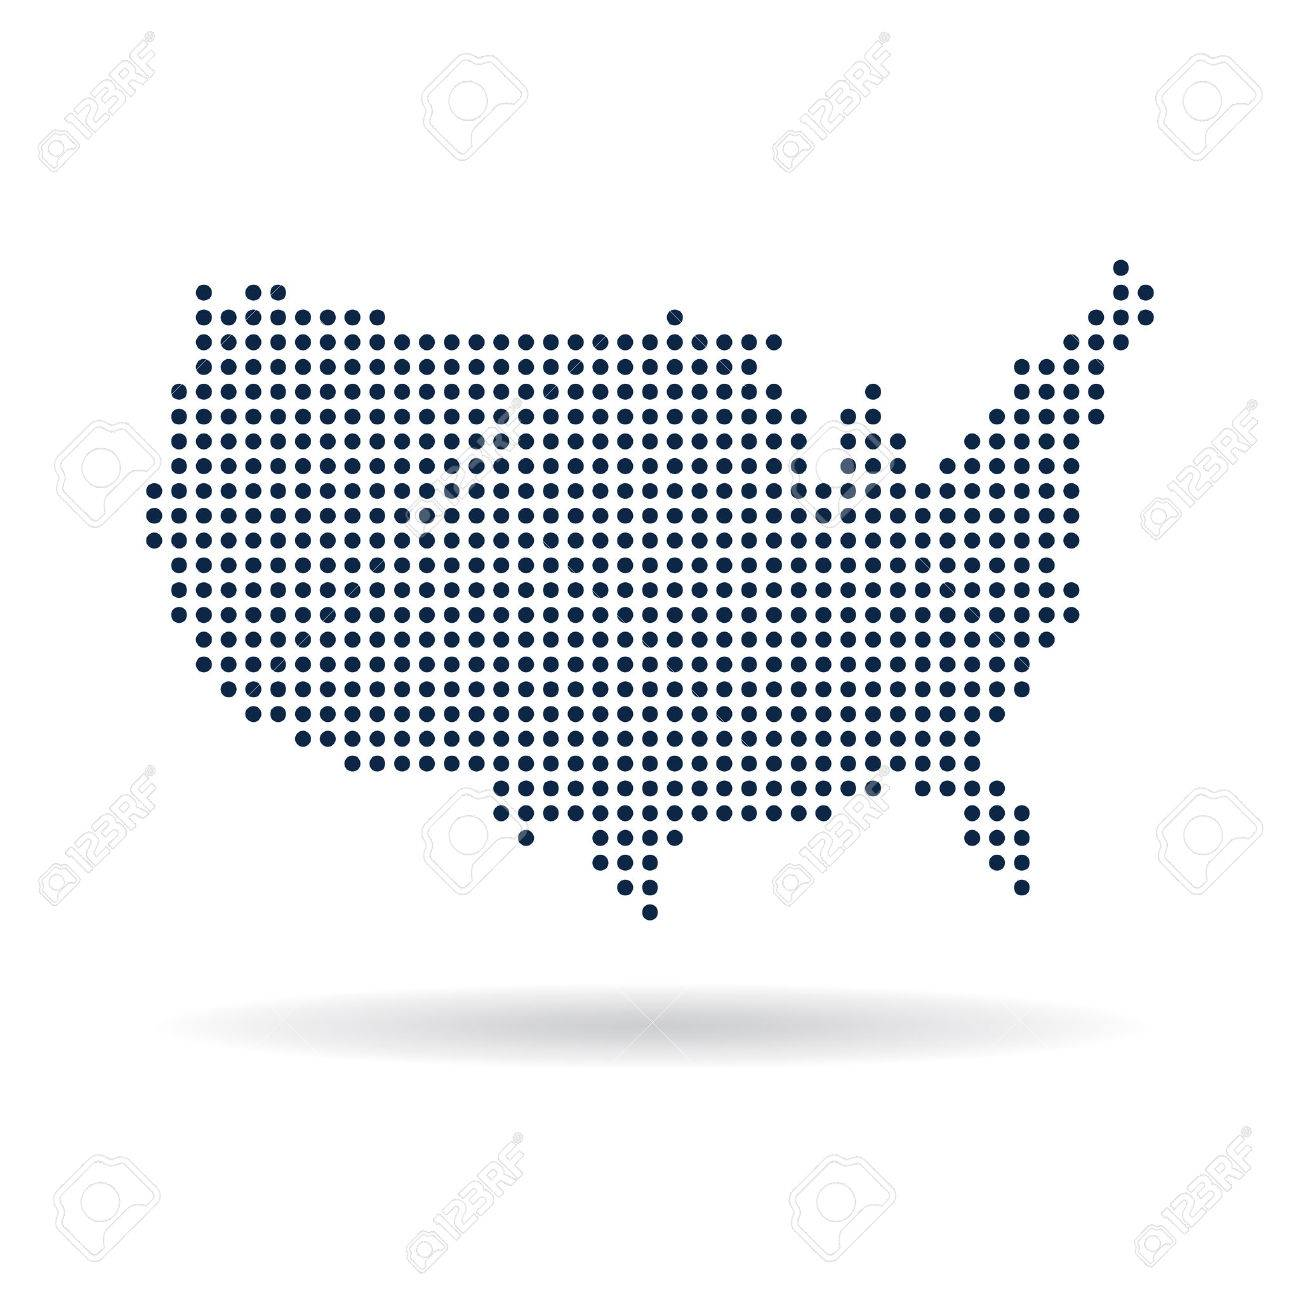 Map Of Usa Vector.Usa Dot Map Concept For Networking Technology And Connections